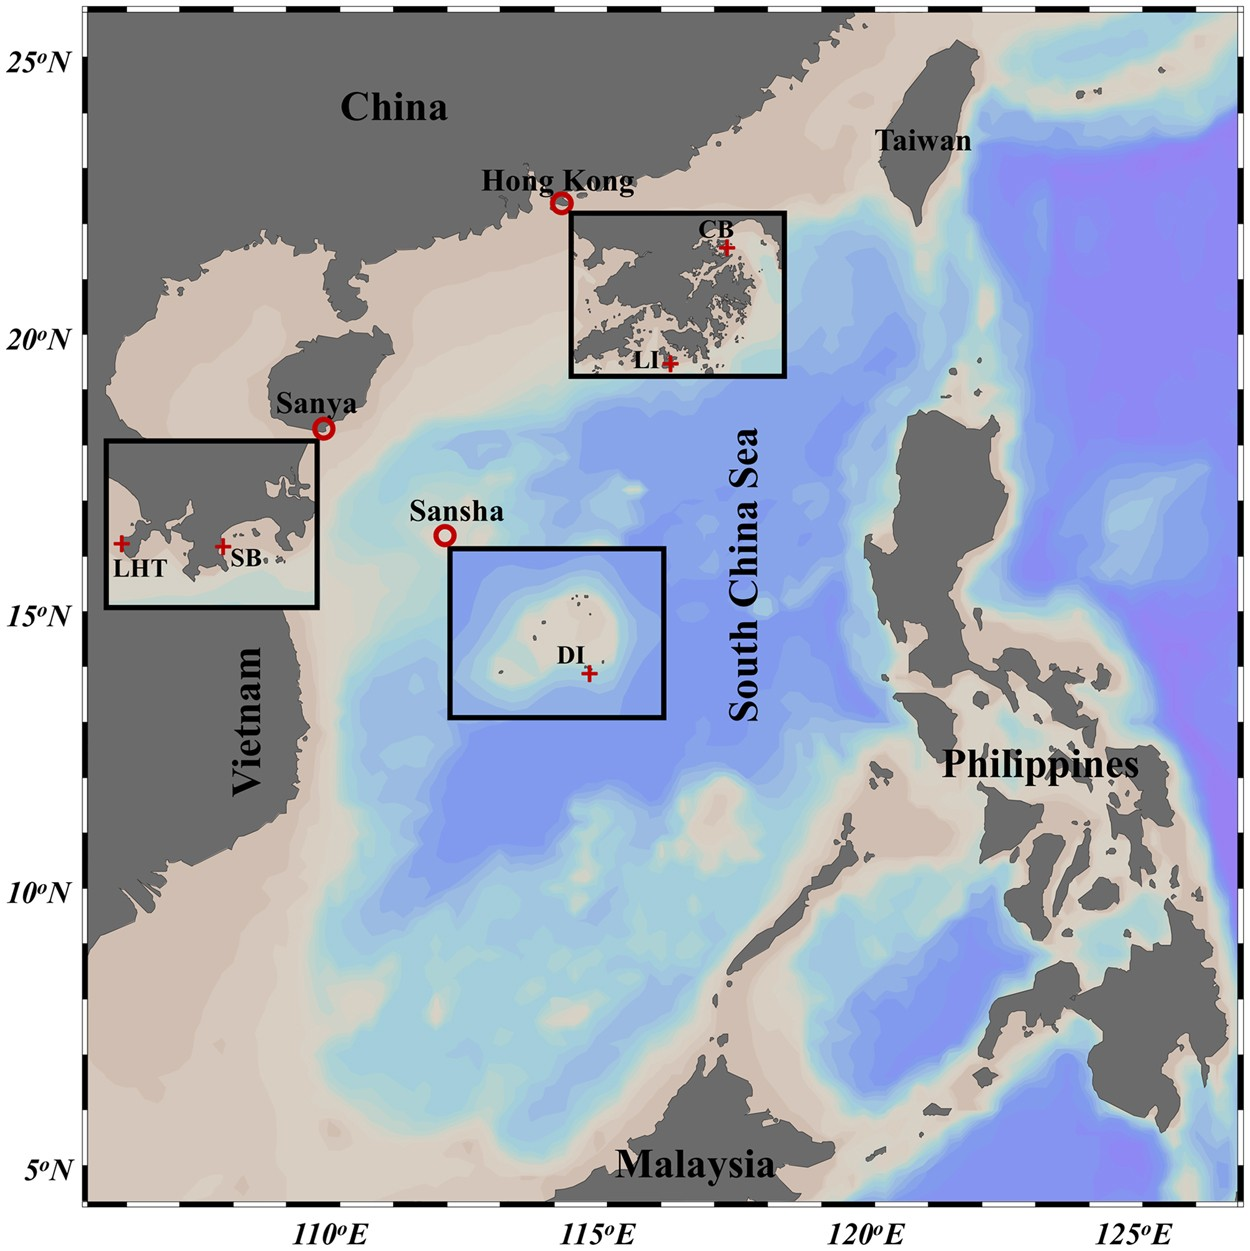 Exploring coral microbiome assemblages in the South China Sea